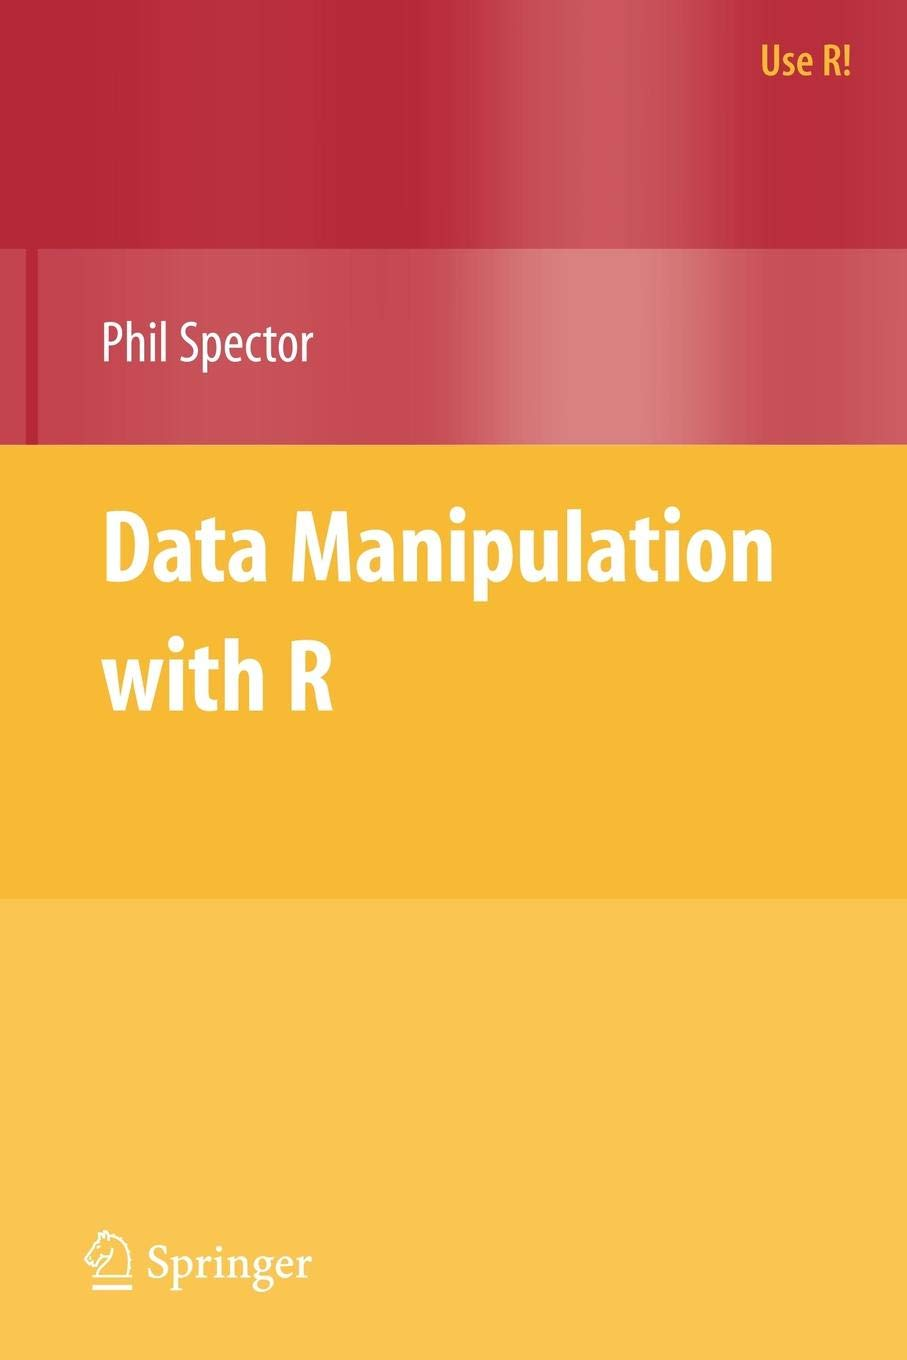 Data Manipulation with R (Use R!)